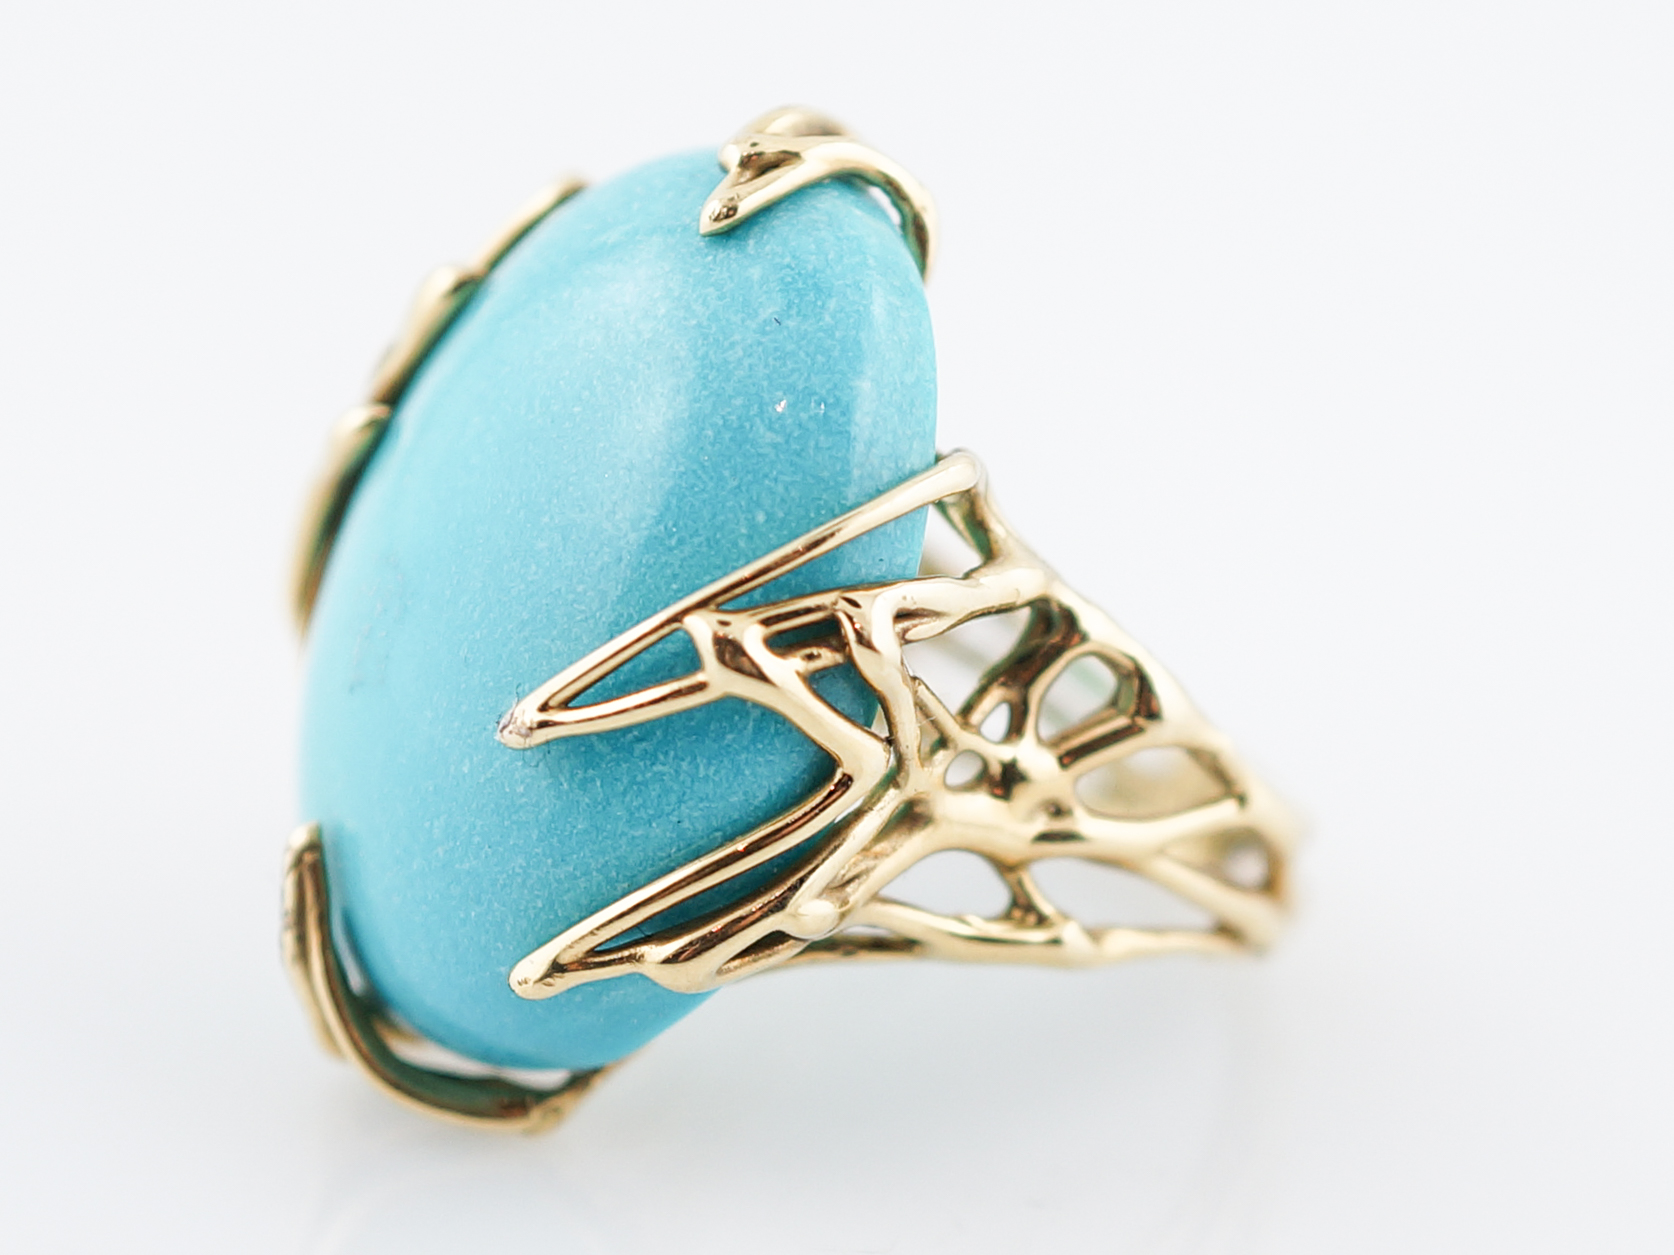 turquoise cuffs diamond from turq collection two our vintage stone blue shop cuff bracelets